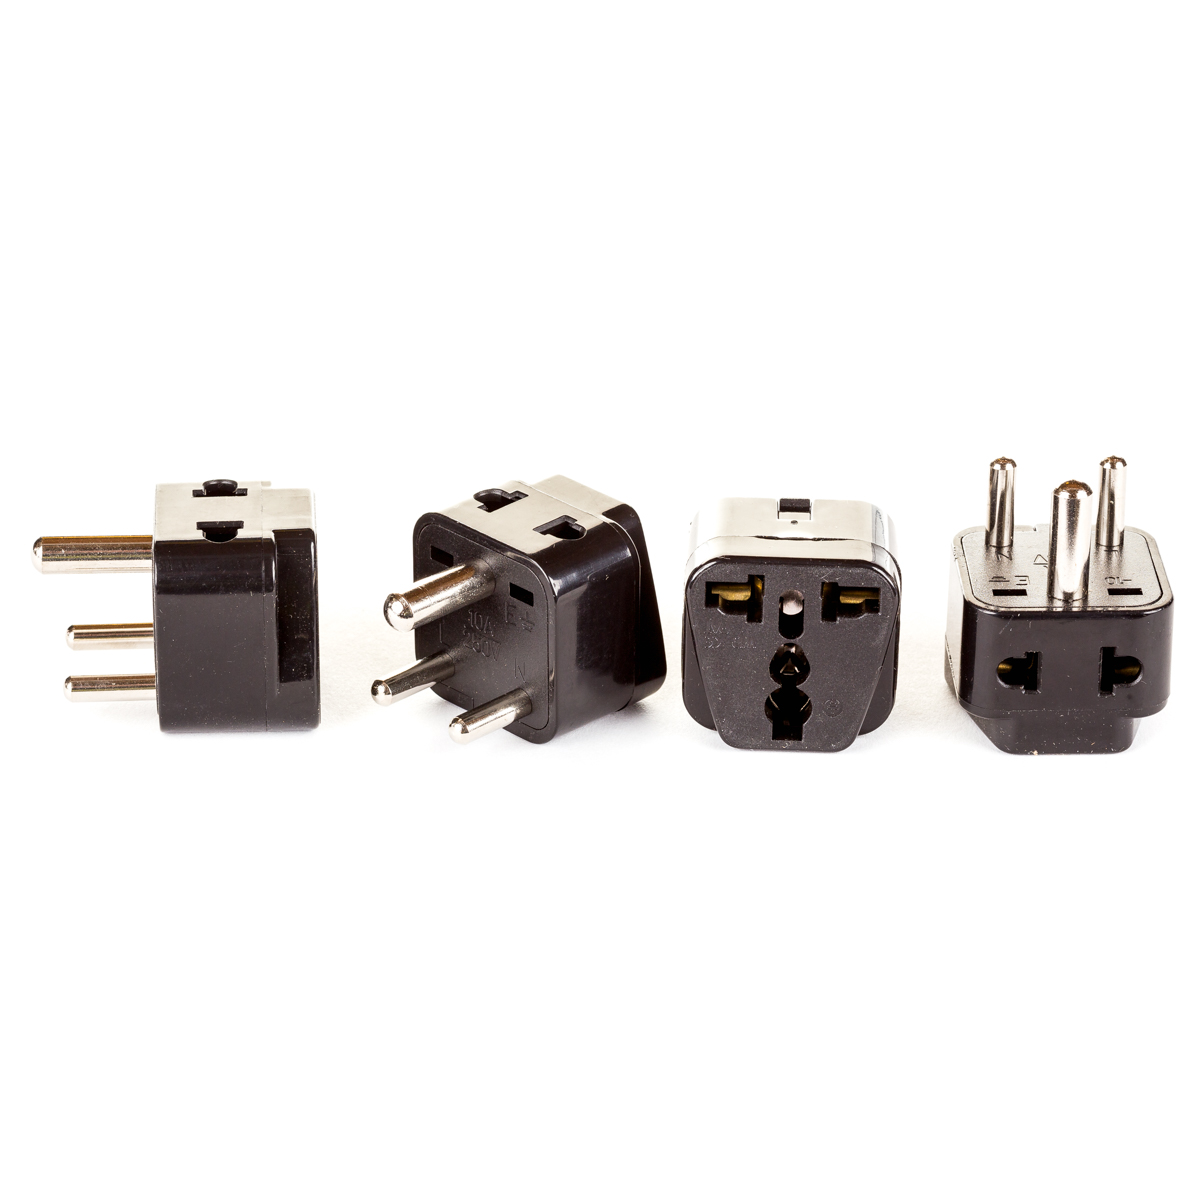 OREI 2 in 1 USA to India Adapter Plug (Type D) 4 Pack, Black by Orei